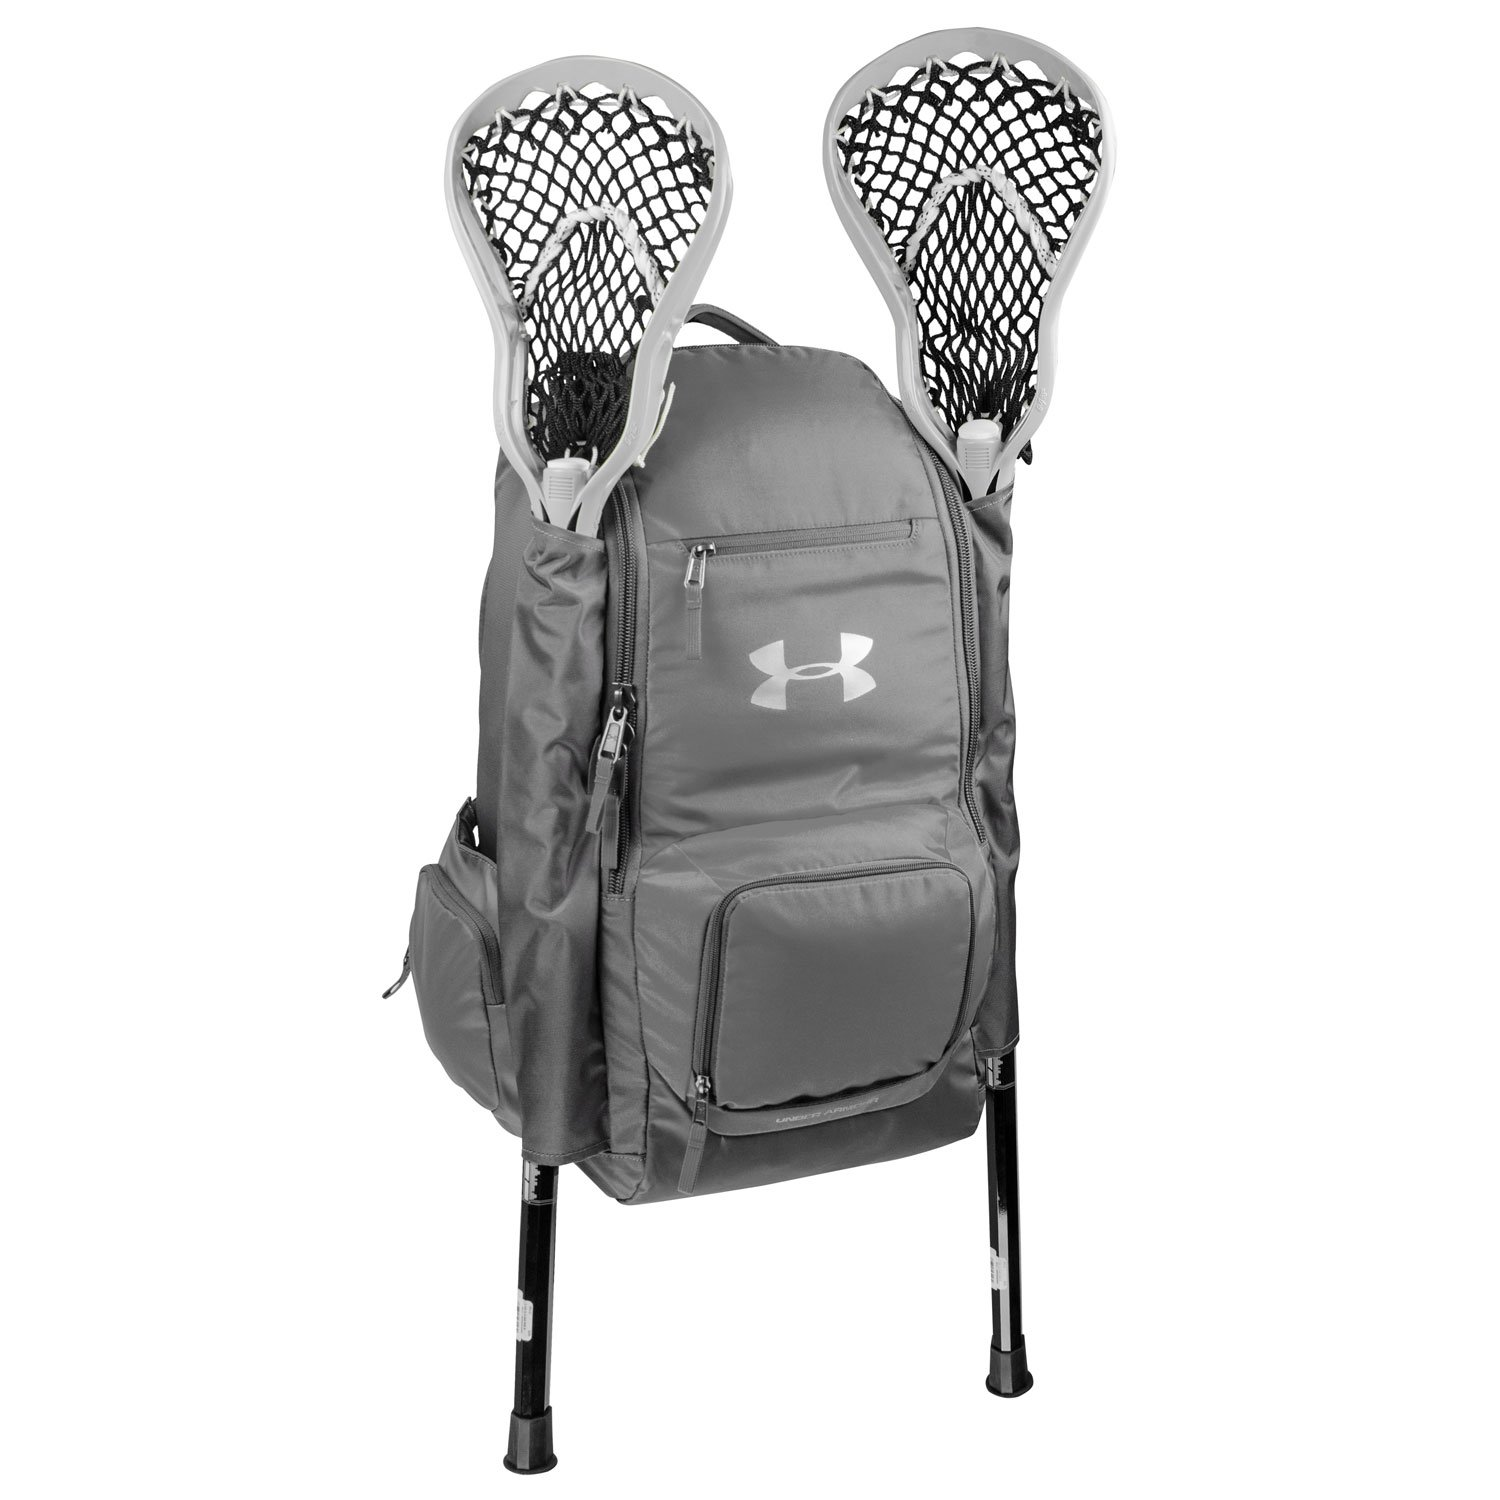 Under Armour UASB-LBP2 Graphite LAX Lacrosse Backpack Gear Bag by Under Armour